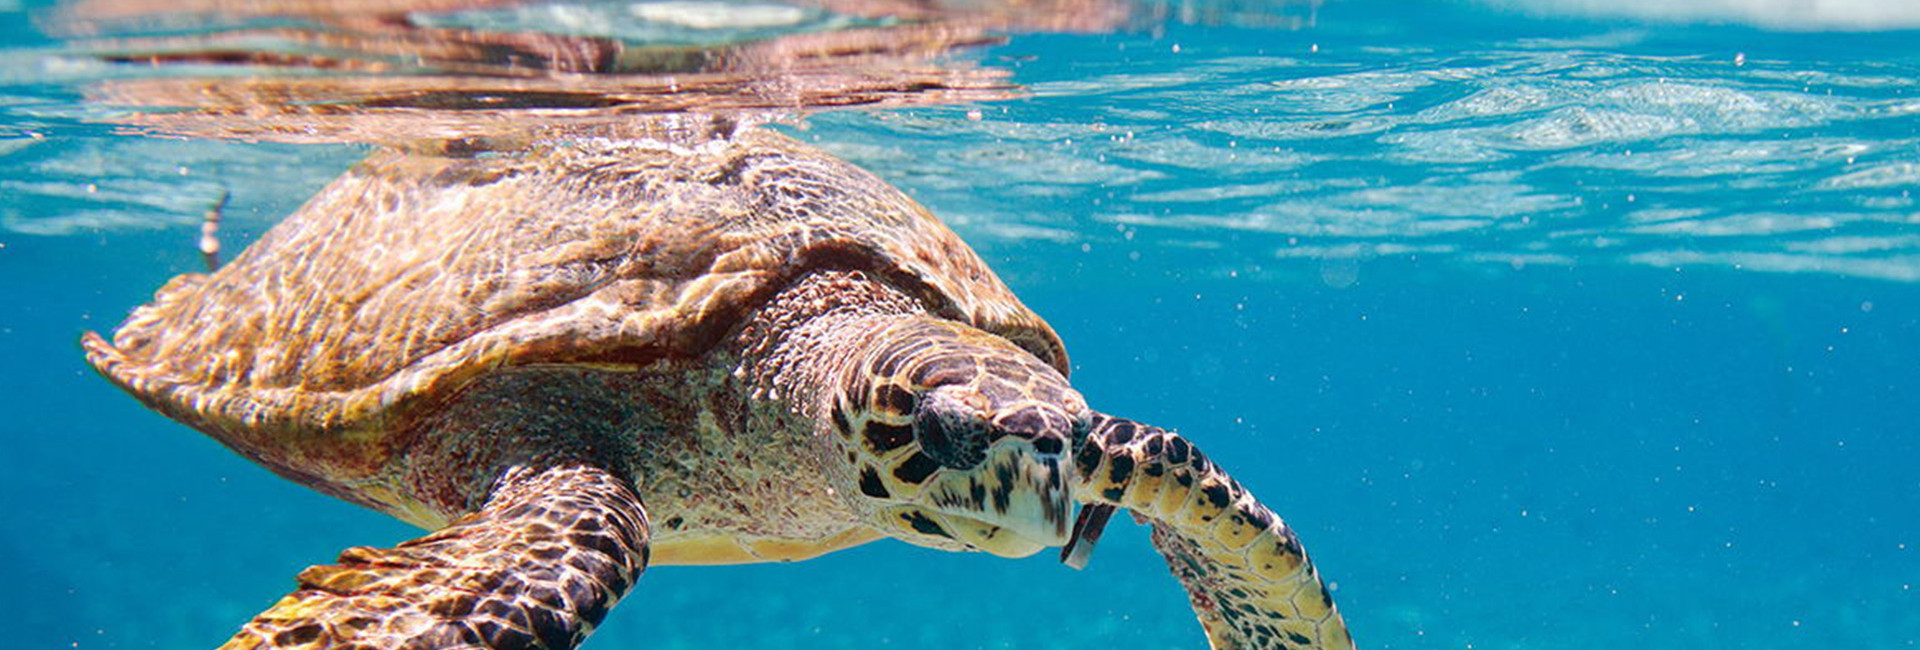 Sea Turtle in clear water